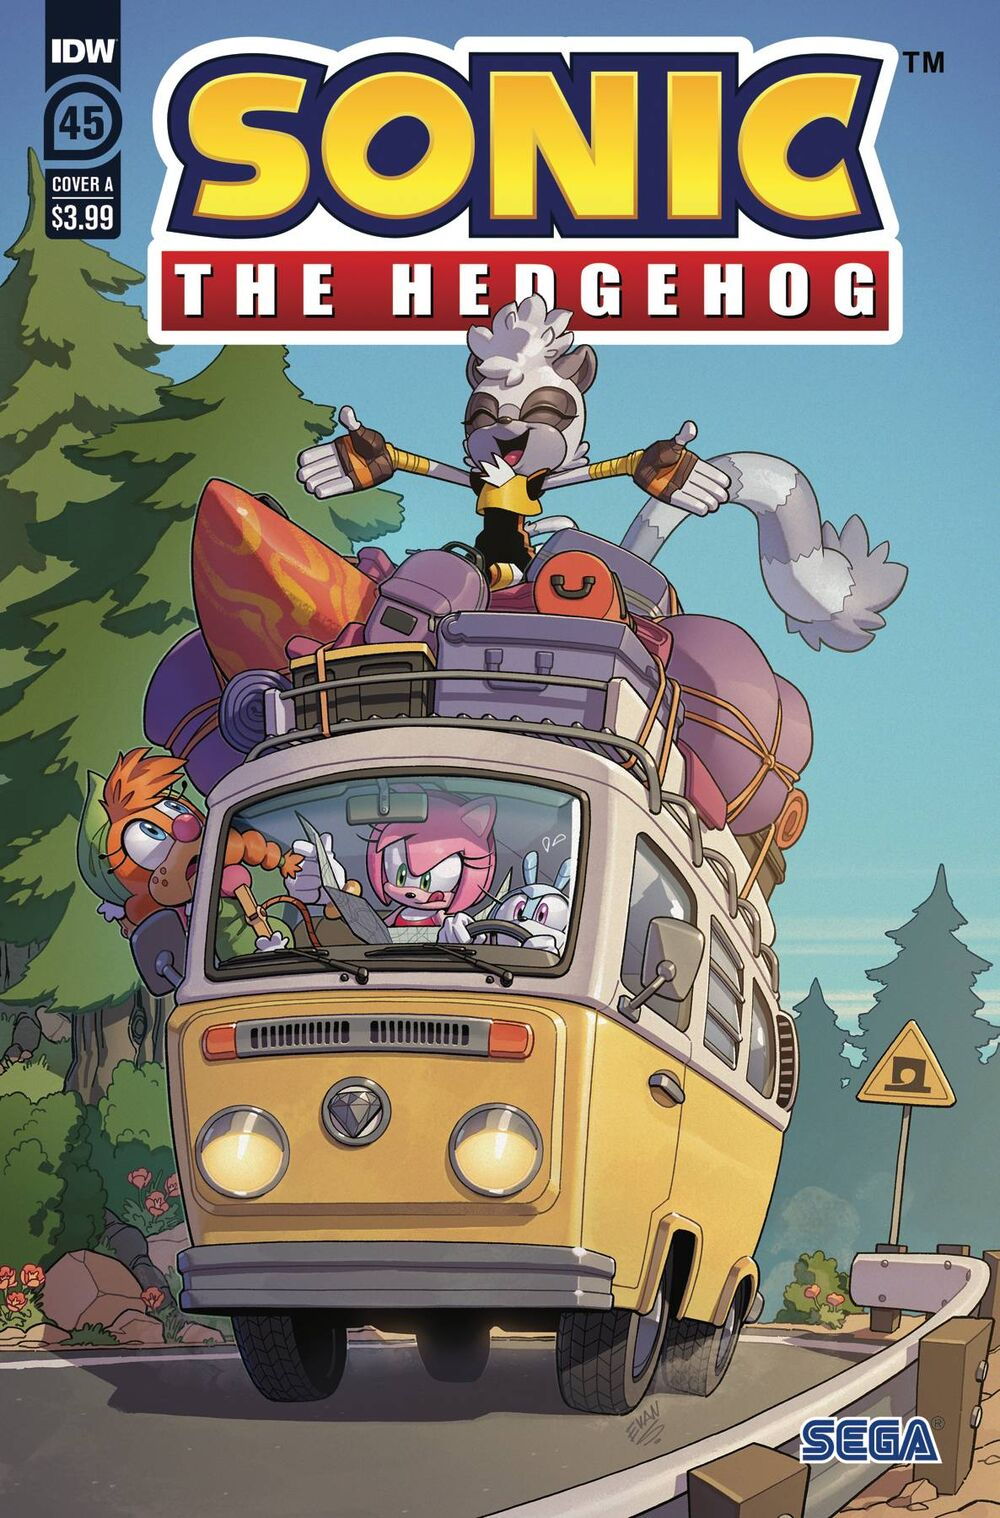 Sonic The Hedgehog #45 Cover A